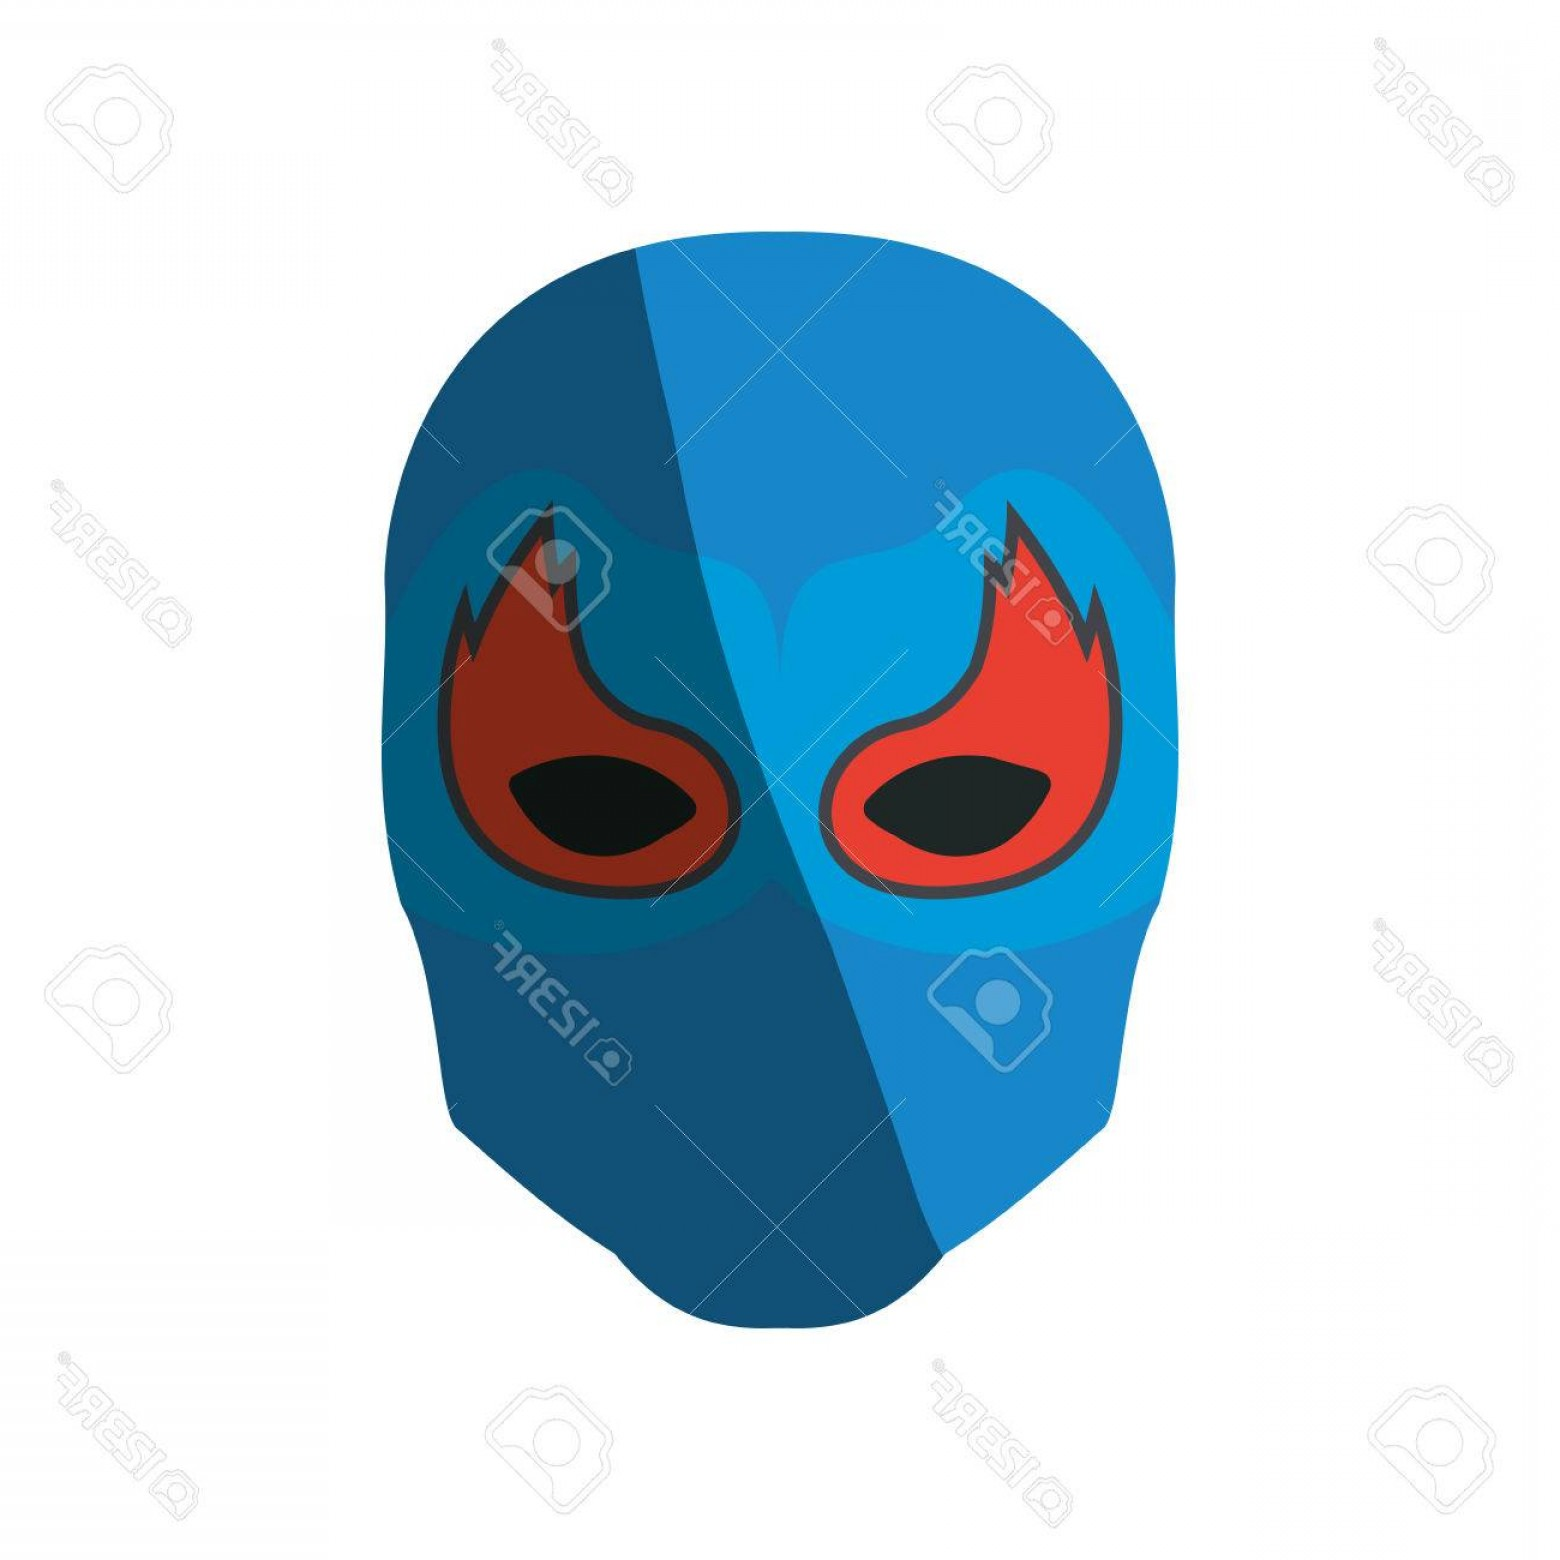 Sand Dollar Silhouette Vector: Photostock Vector Colorful Silhouette With Faceless Man Superhero Masked With Mask Shape Of Flame Around The Eyes And